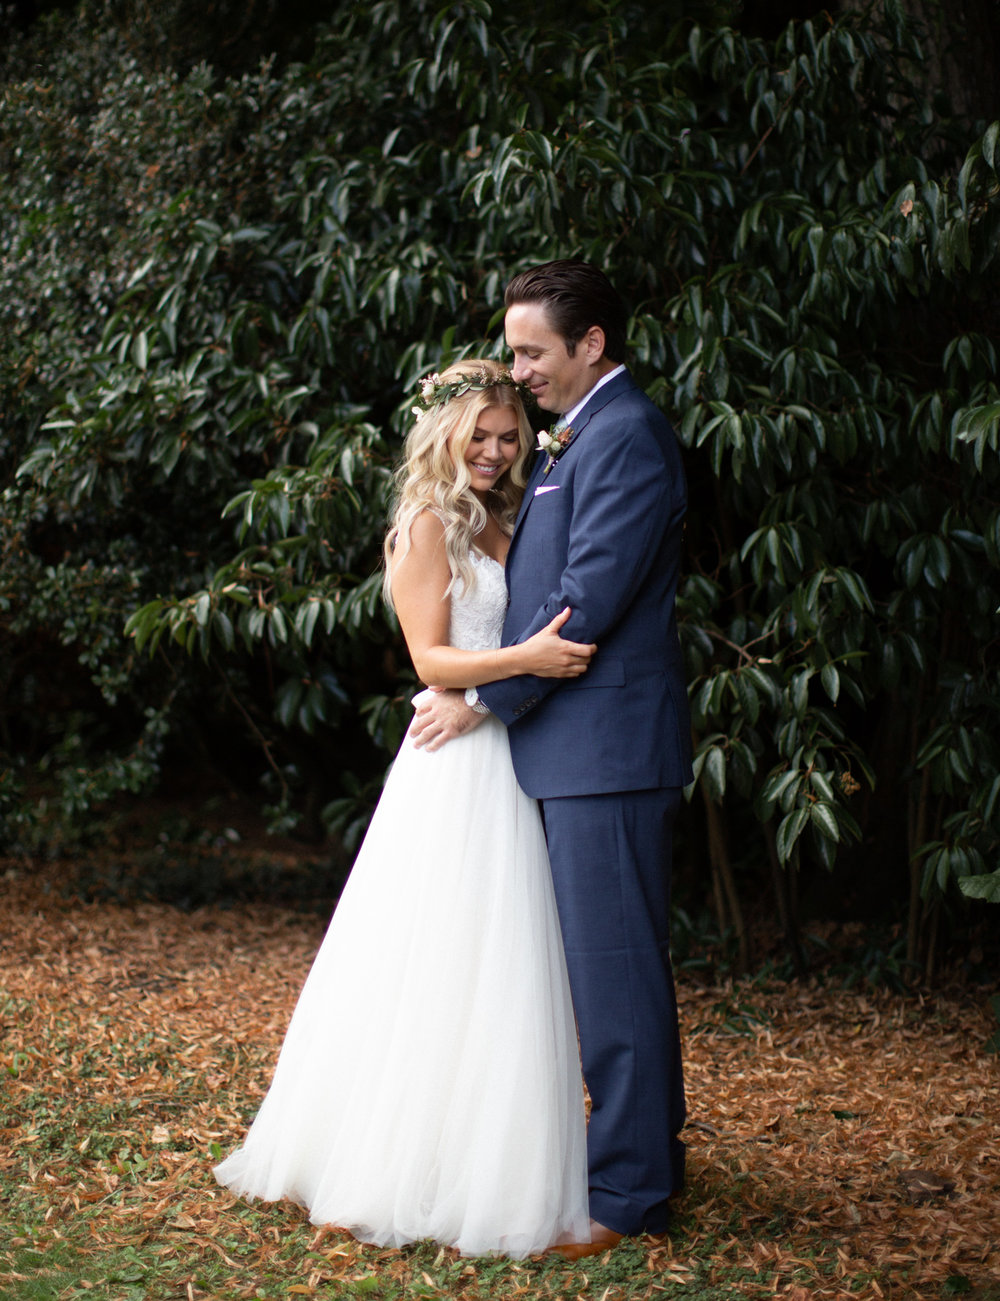 Jessica + Scott_Olivia_Ashton_Photography-37.jpg